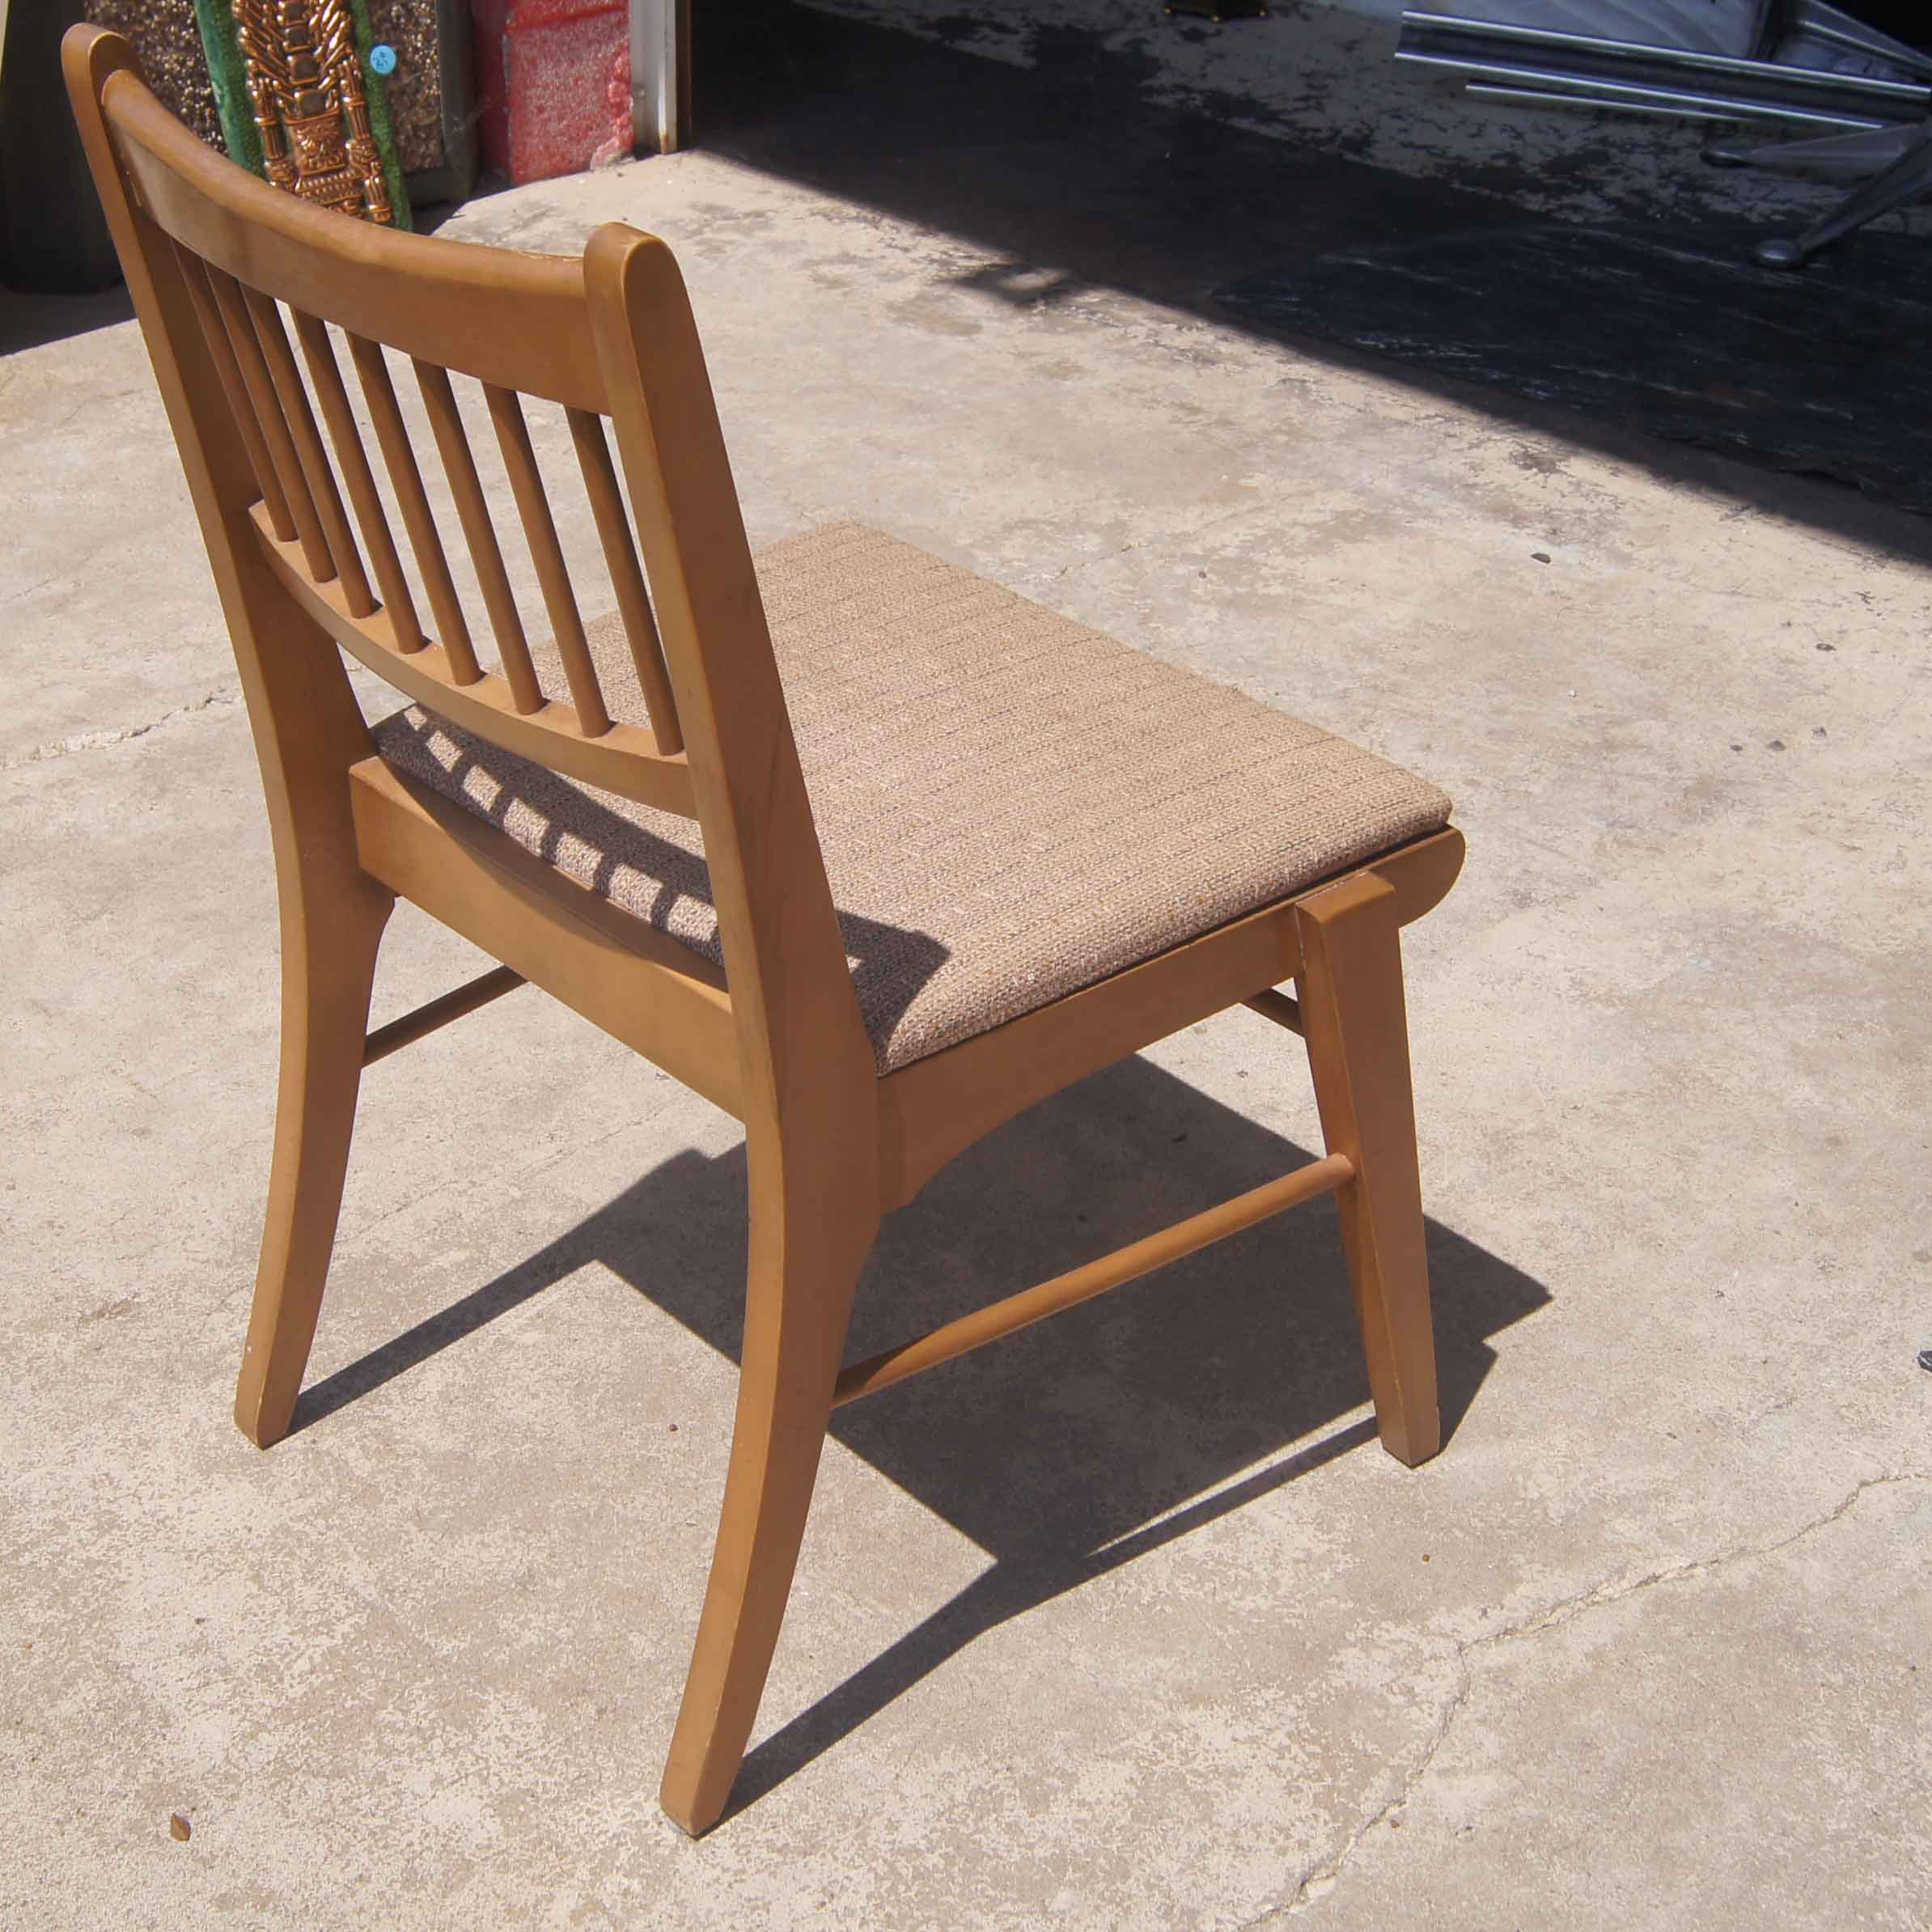 Vintage mid century modern wood side chair birch chair with slatted back